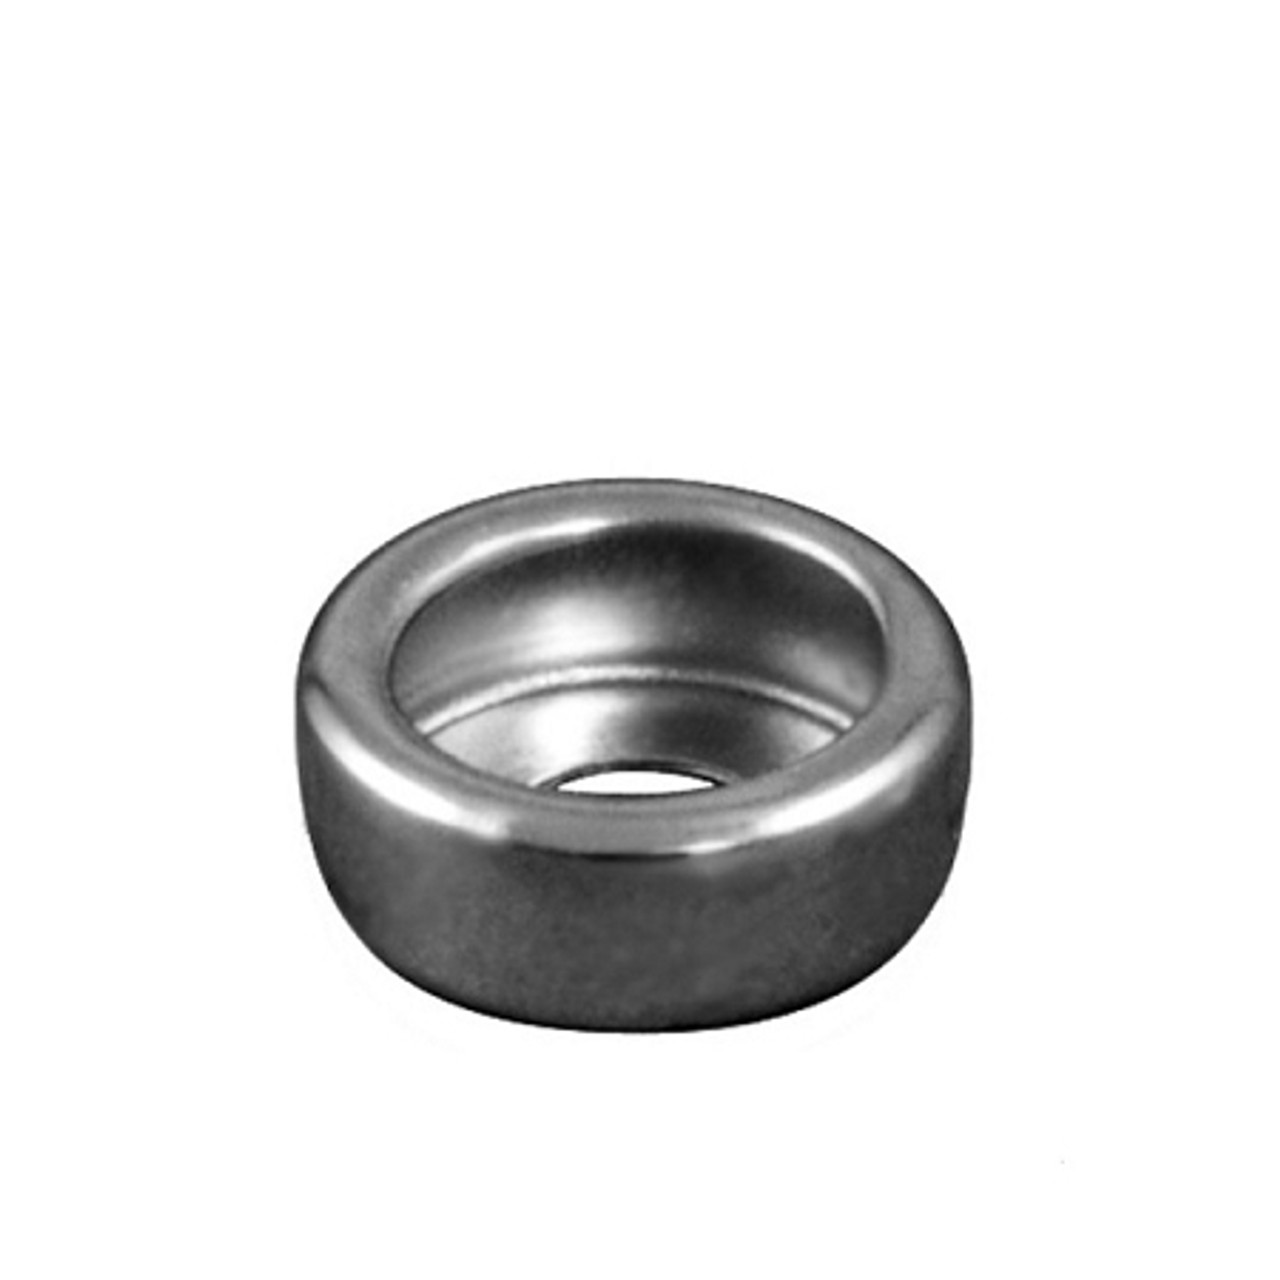 #24 Snap Flange-less Stud - 100 ea.